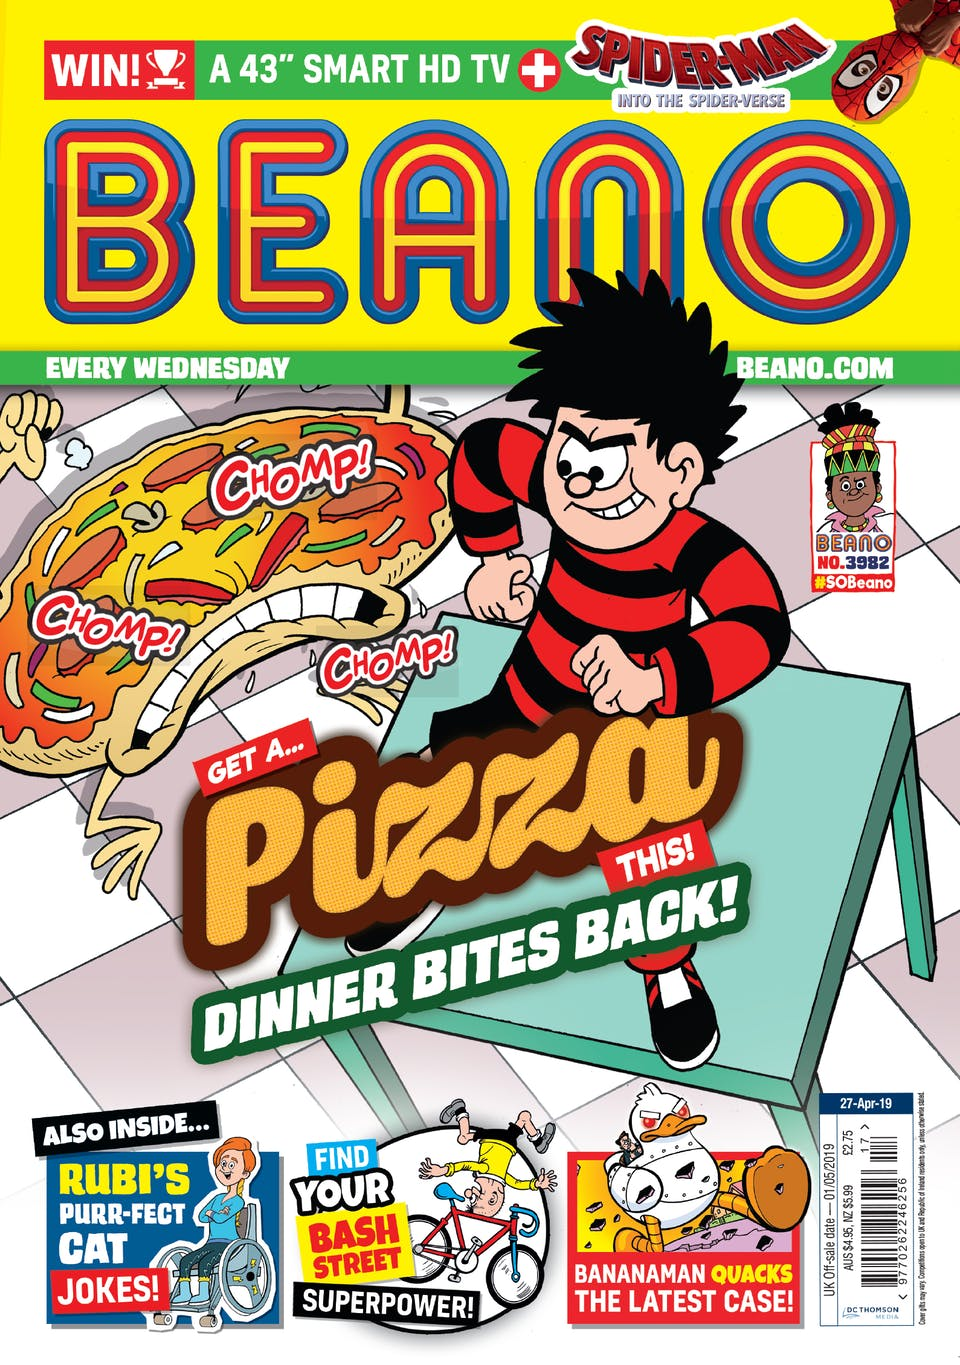 Beano no. 3982! - Dinner Bites Back!